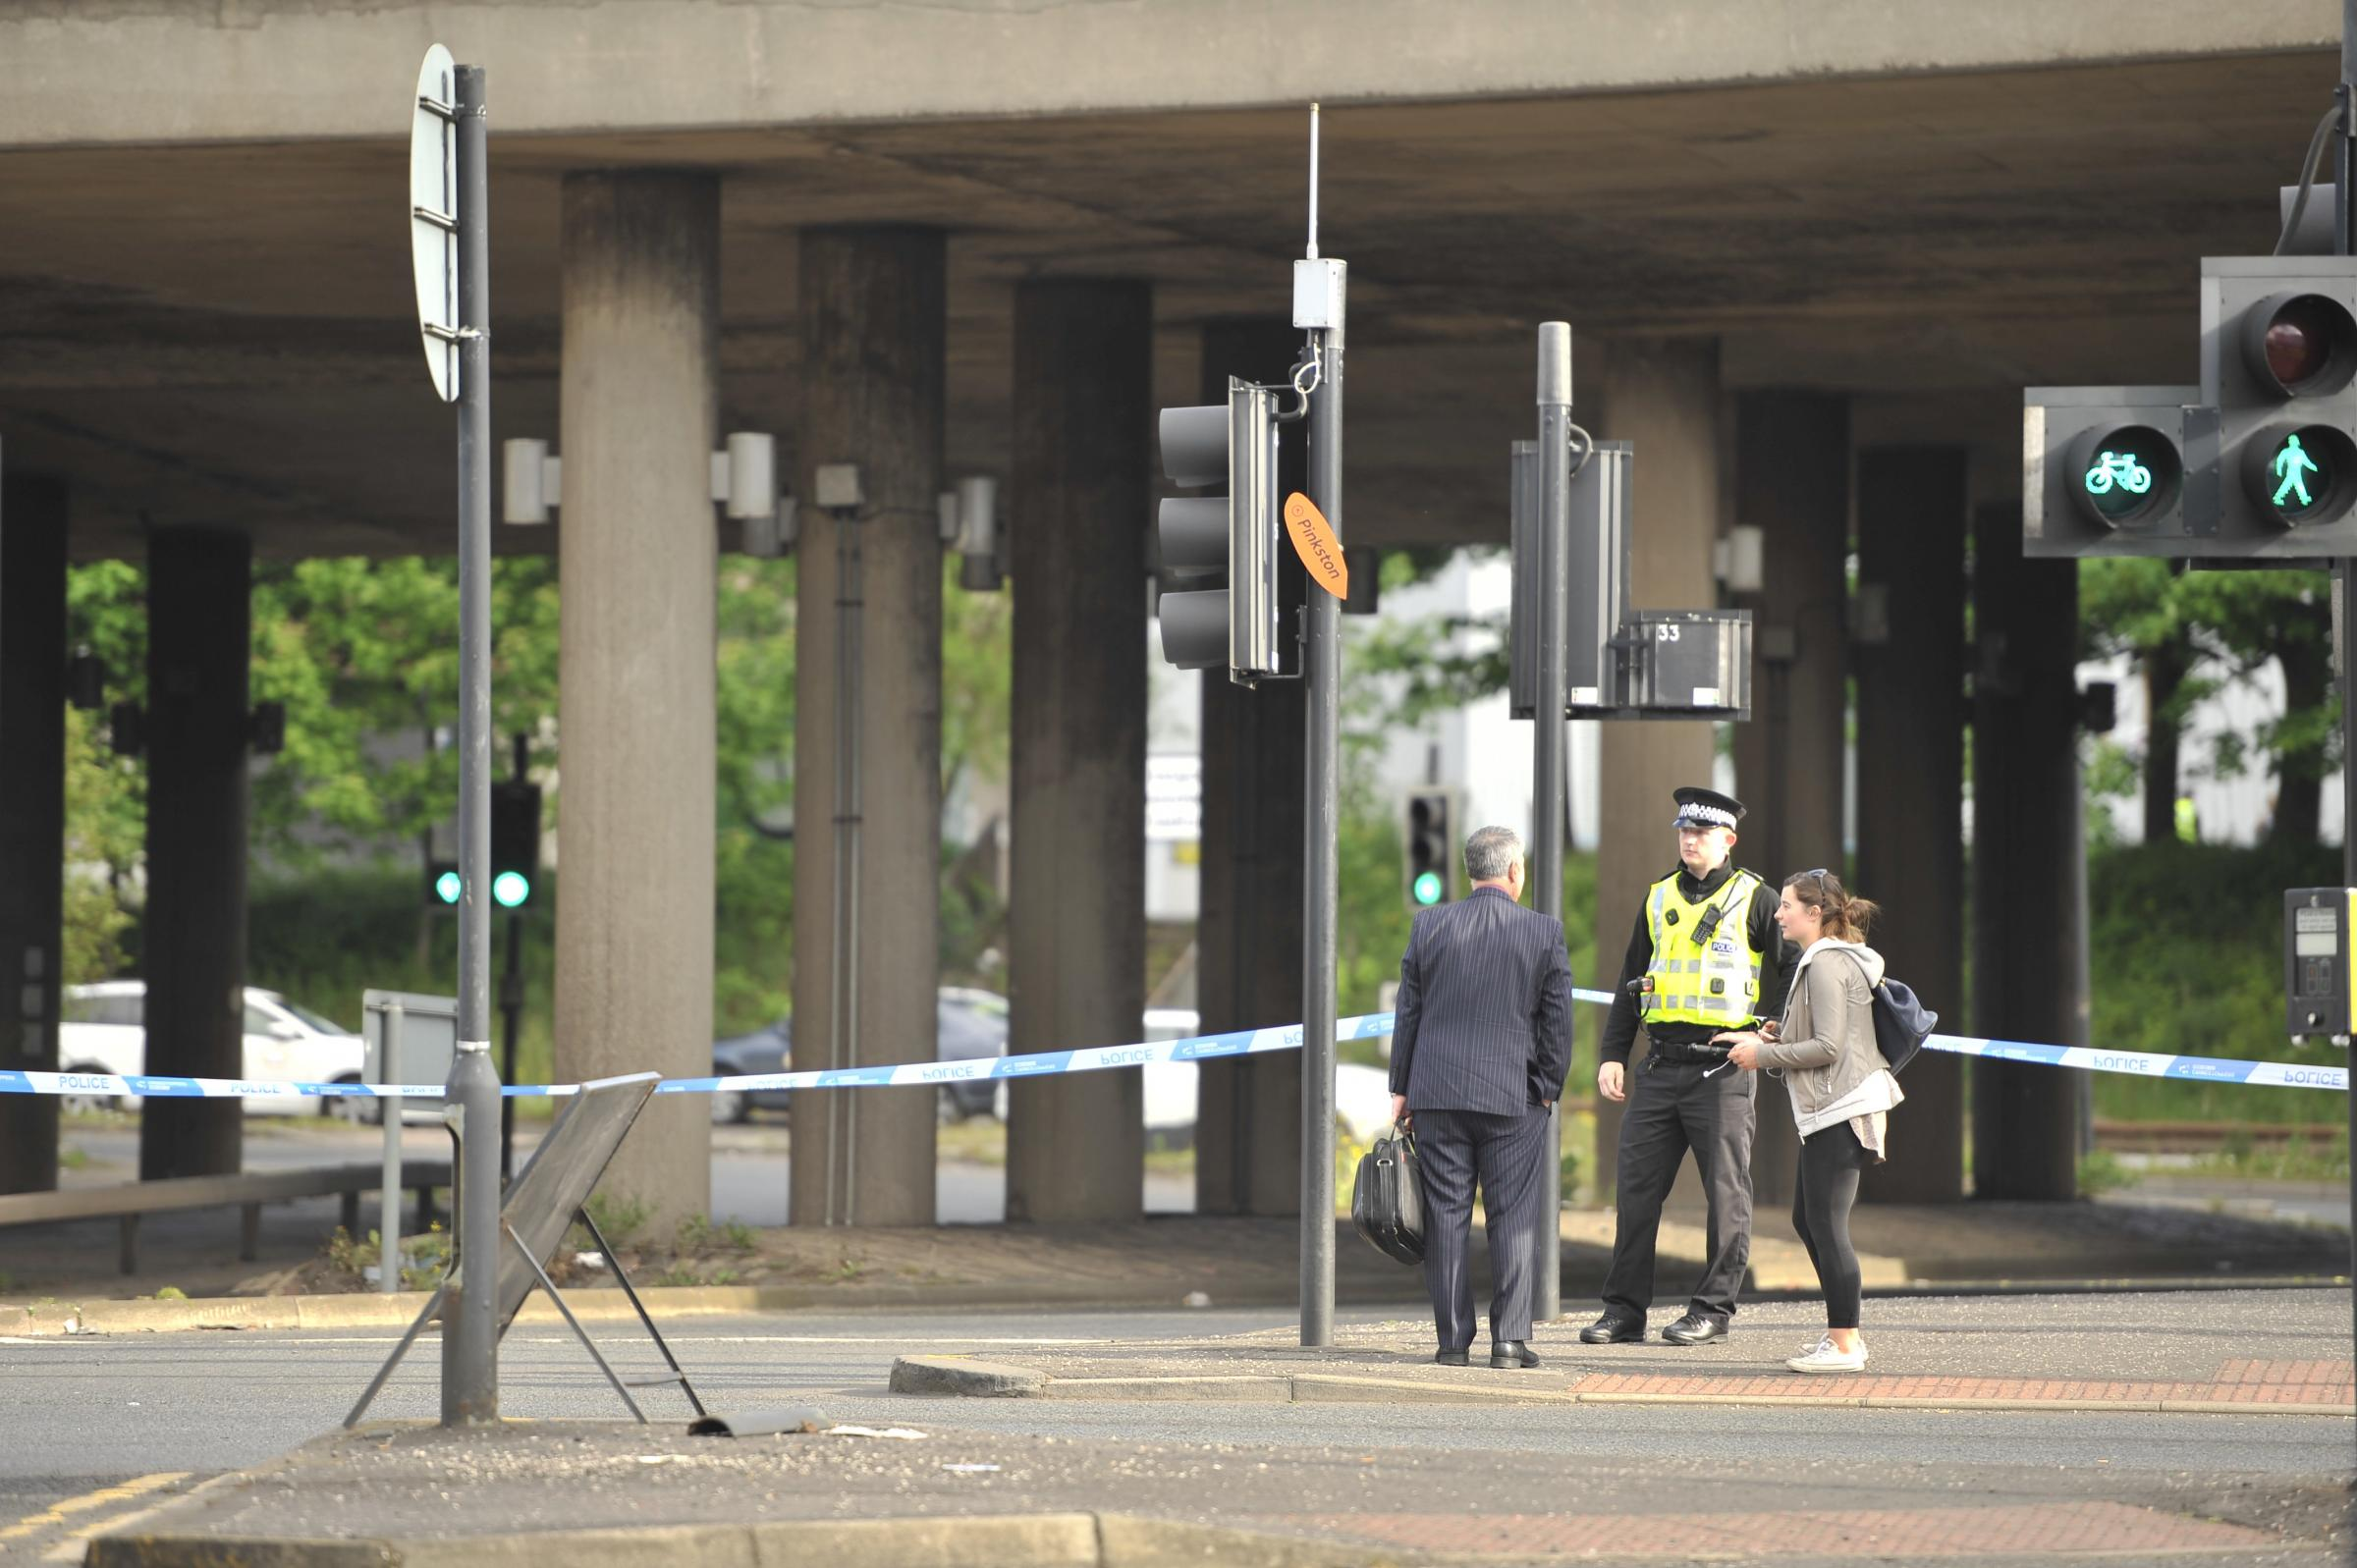 Man shot in face during late-night attack near M8